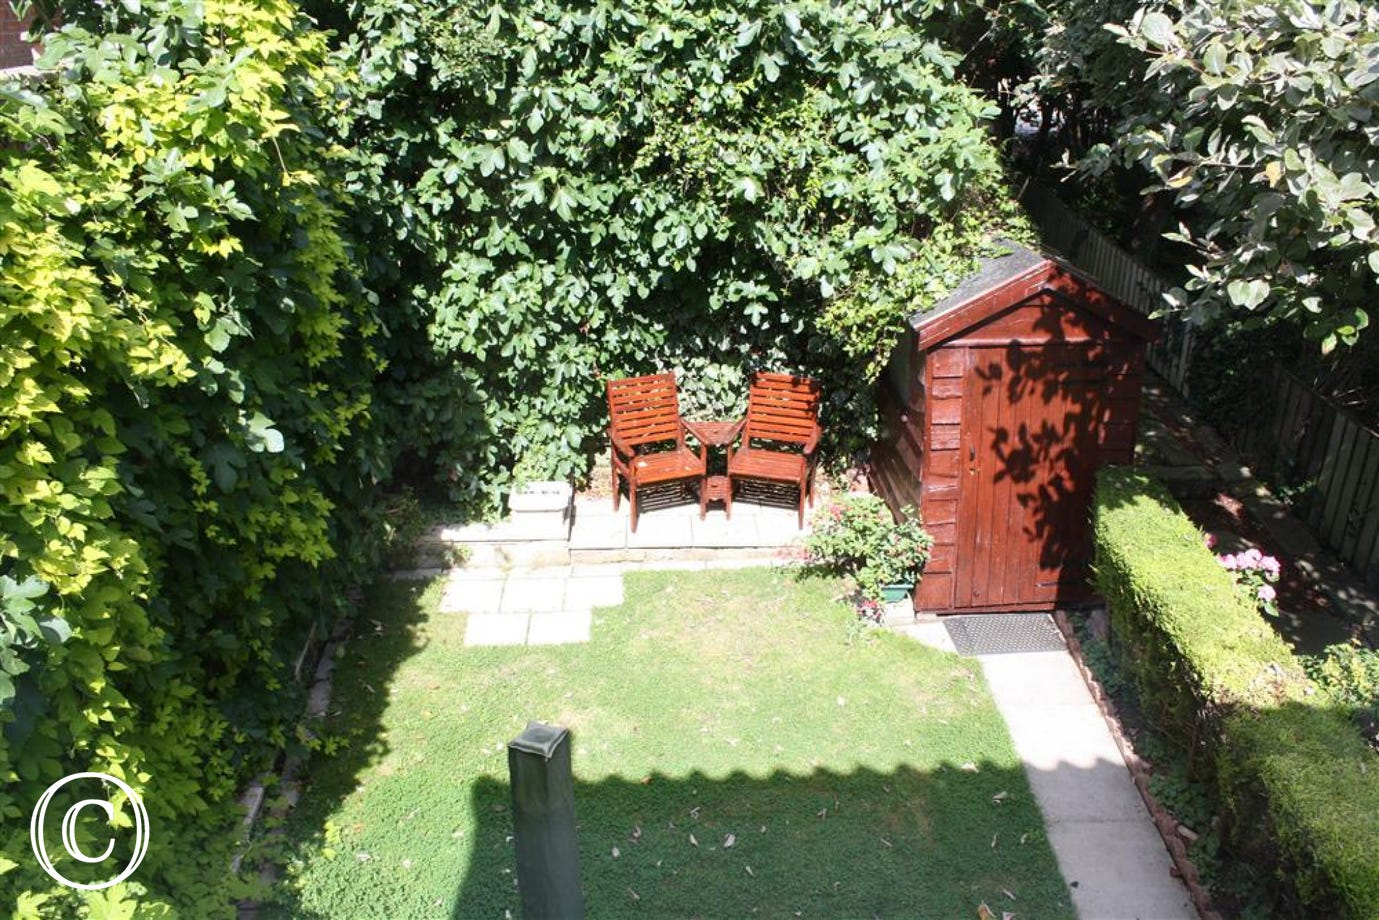 Small garden to the rear of the property - a real luxury in the town centre.